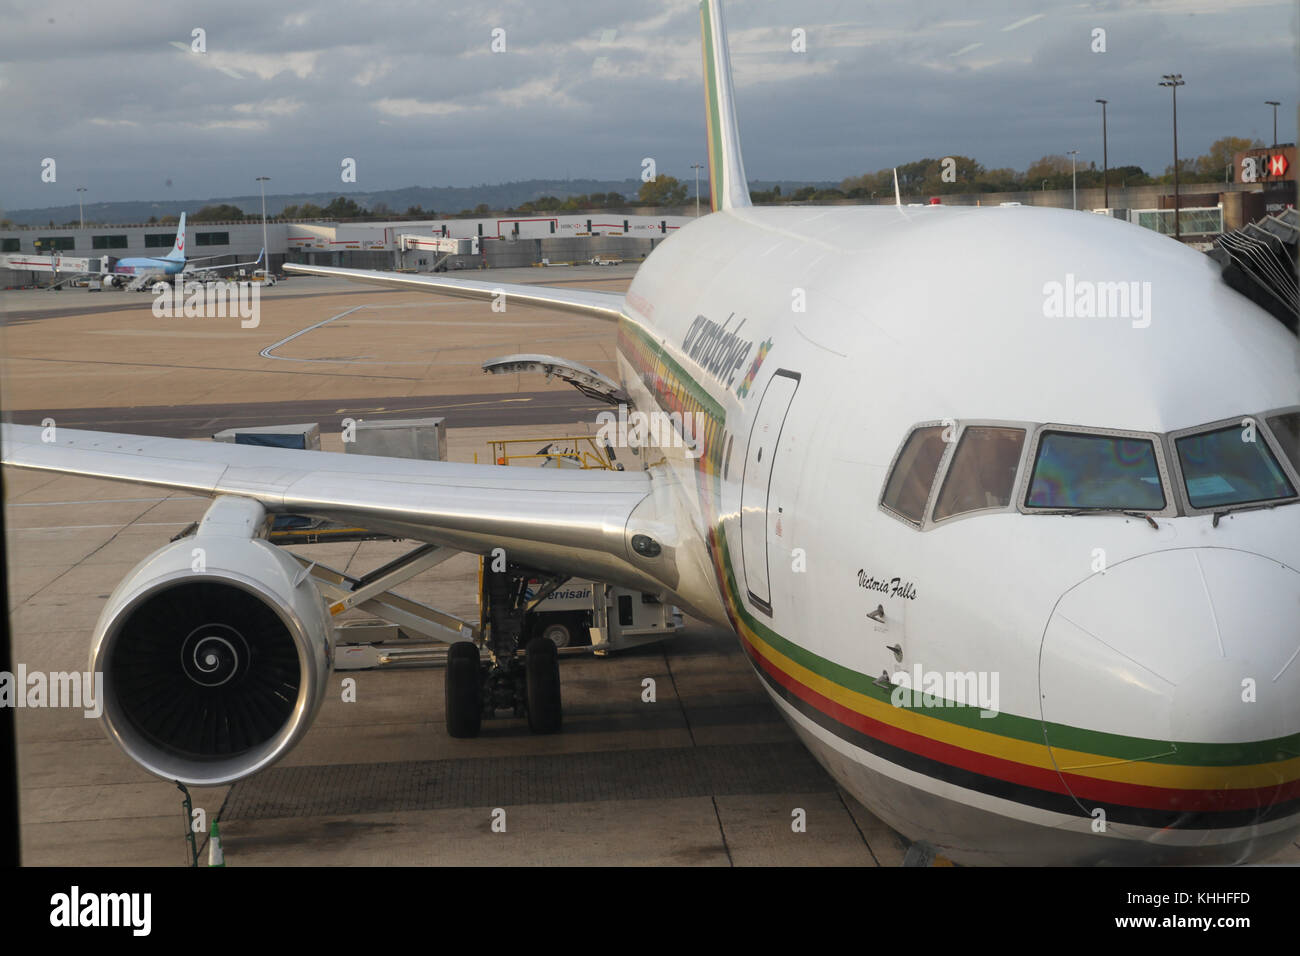 Gatwick, UK - 10 October 2011: Air Zimbabwe airbus christened 'Victoria Falls' ready for the 9.5-hour direct - Stock Image